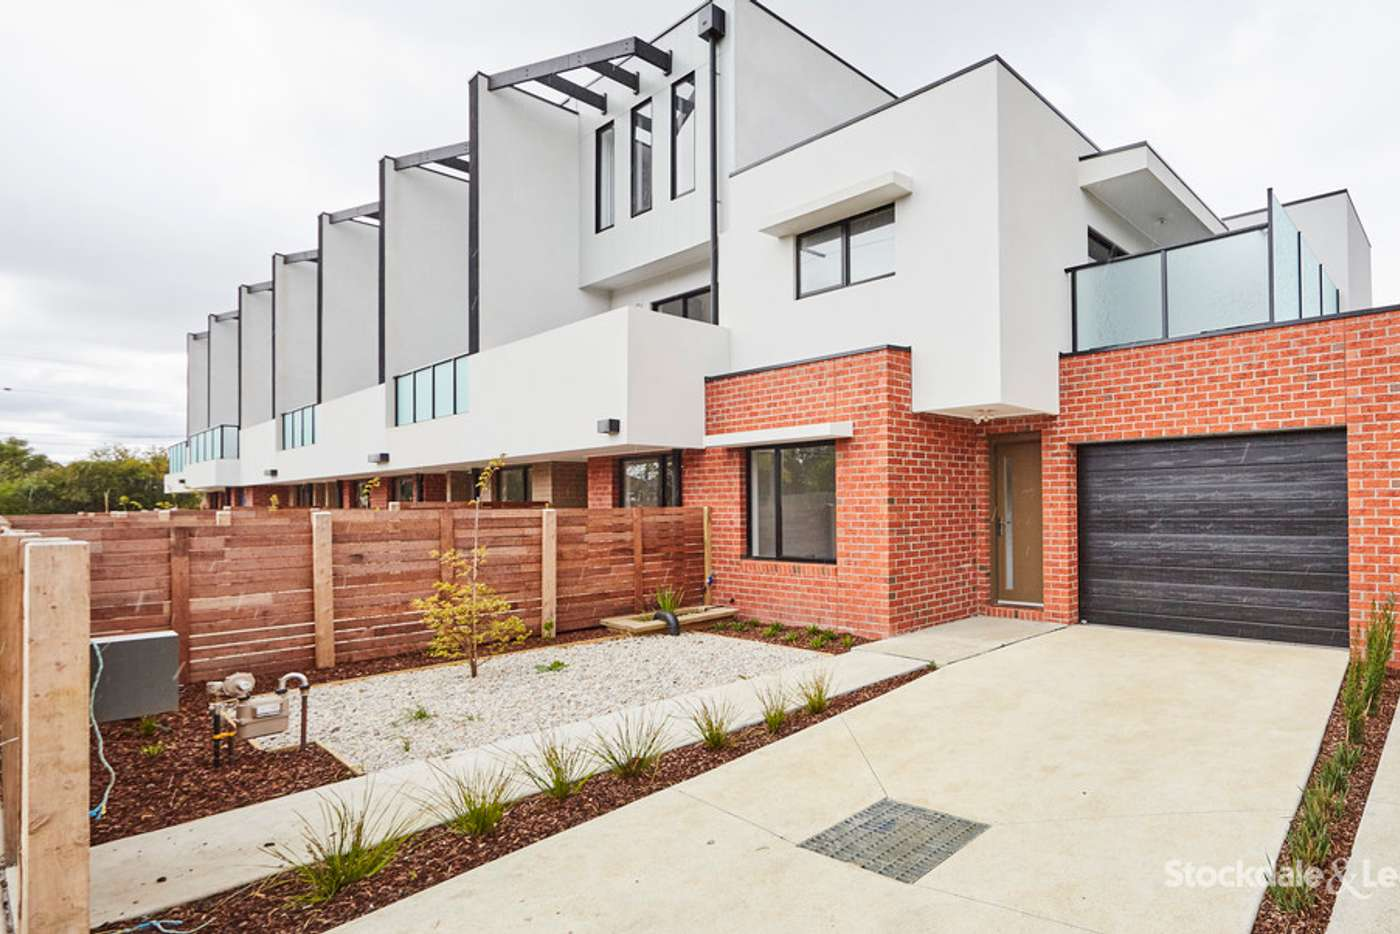 Main view of Homely townhouse listing, 1/85 Chapman Avenue, Glenroy VIC 3046